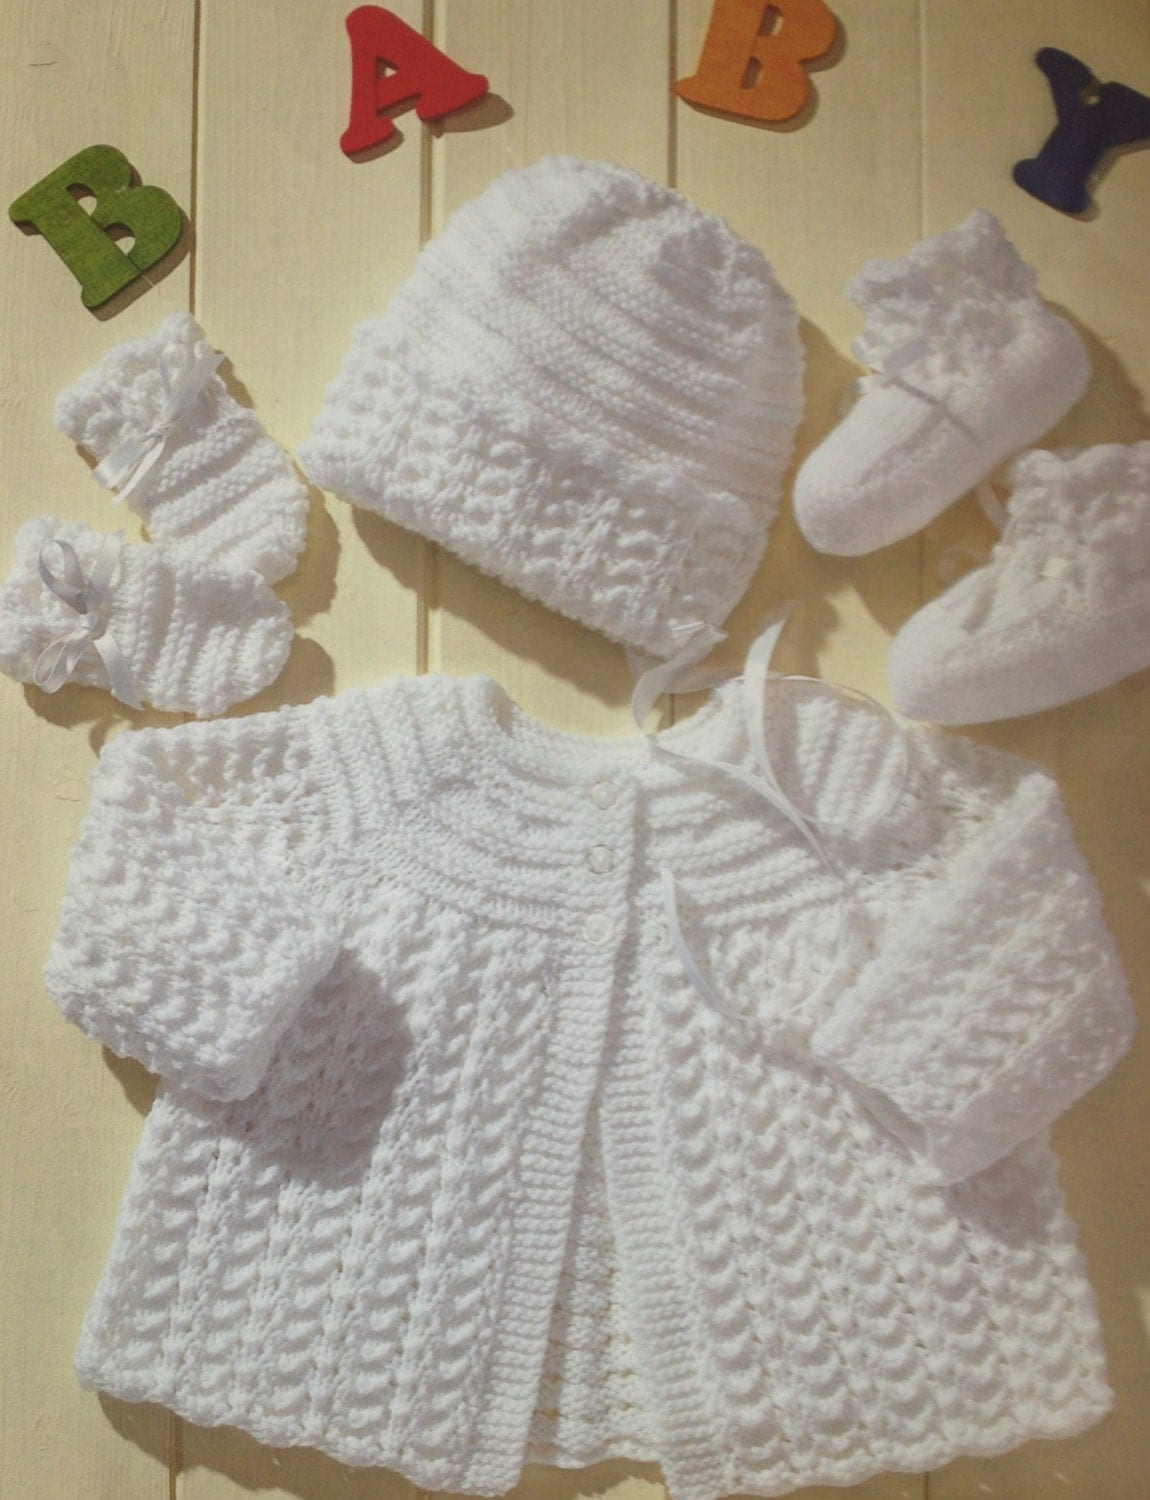 Knitting Patterns For New Baby : baby knitting pattern vintage matinee coat bonnet booties